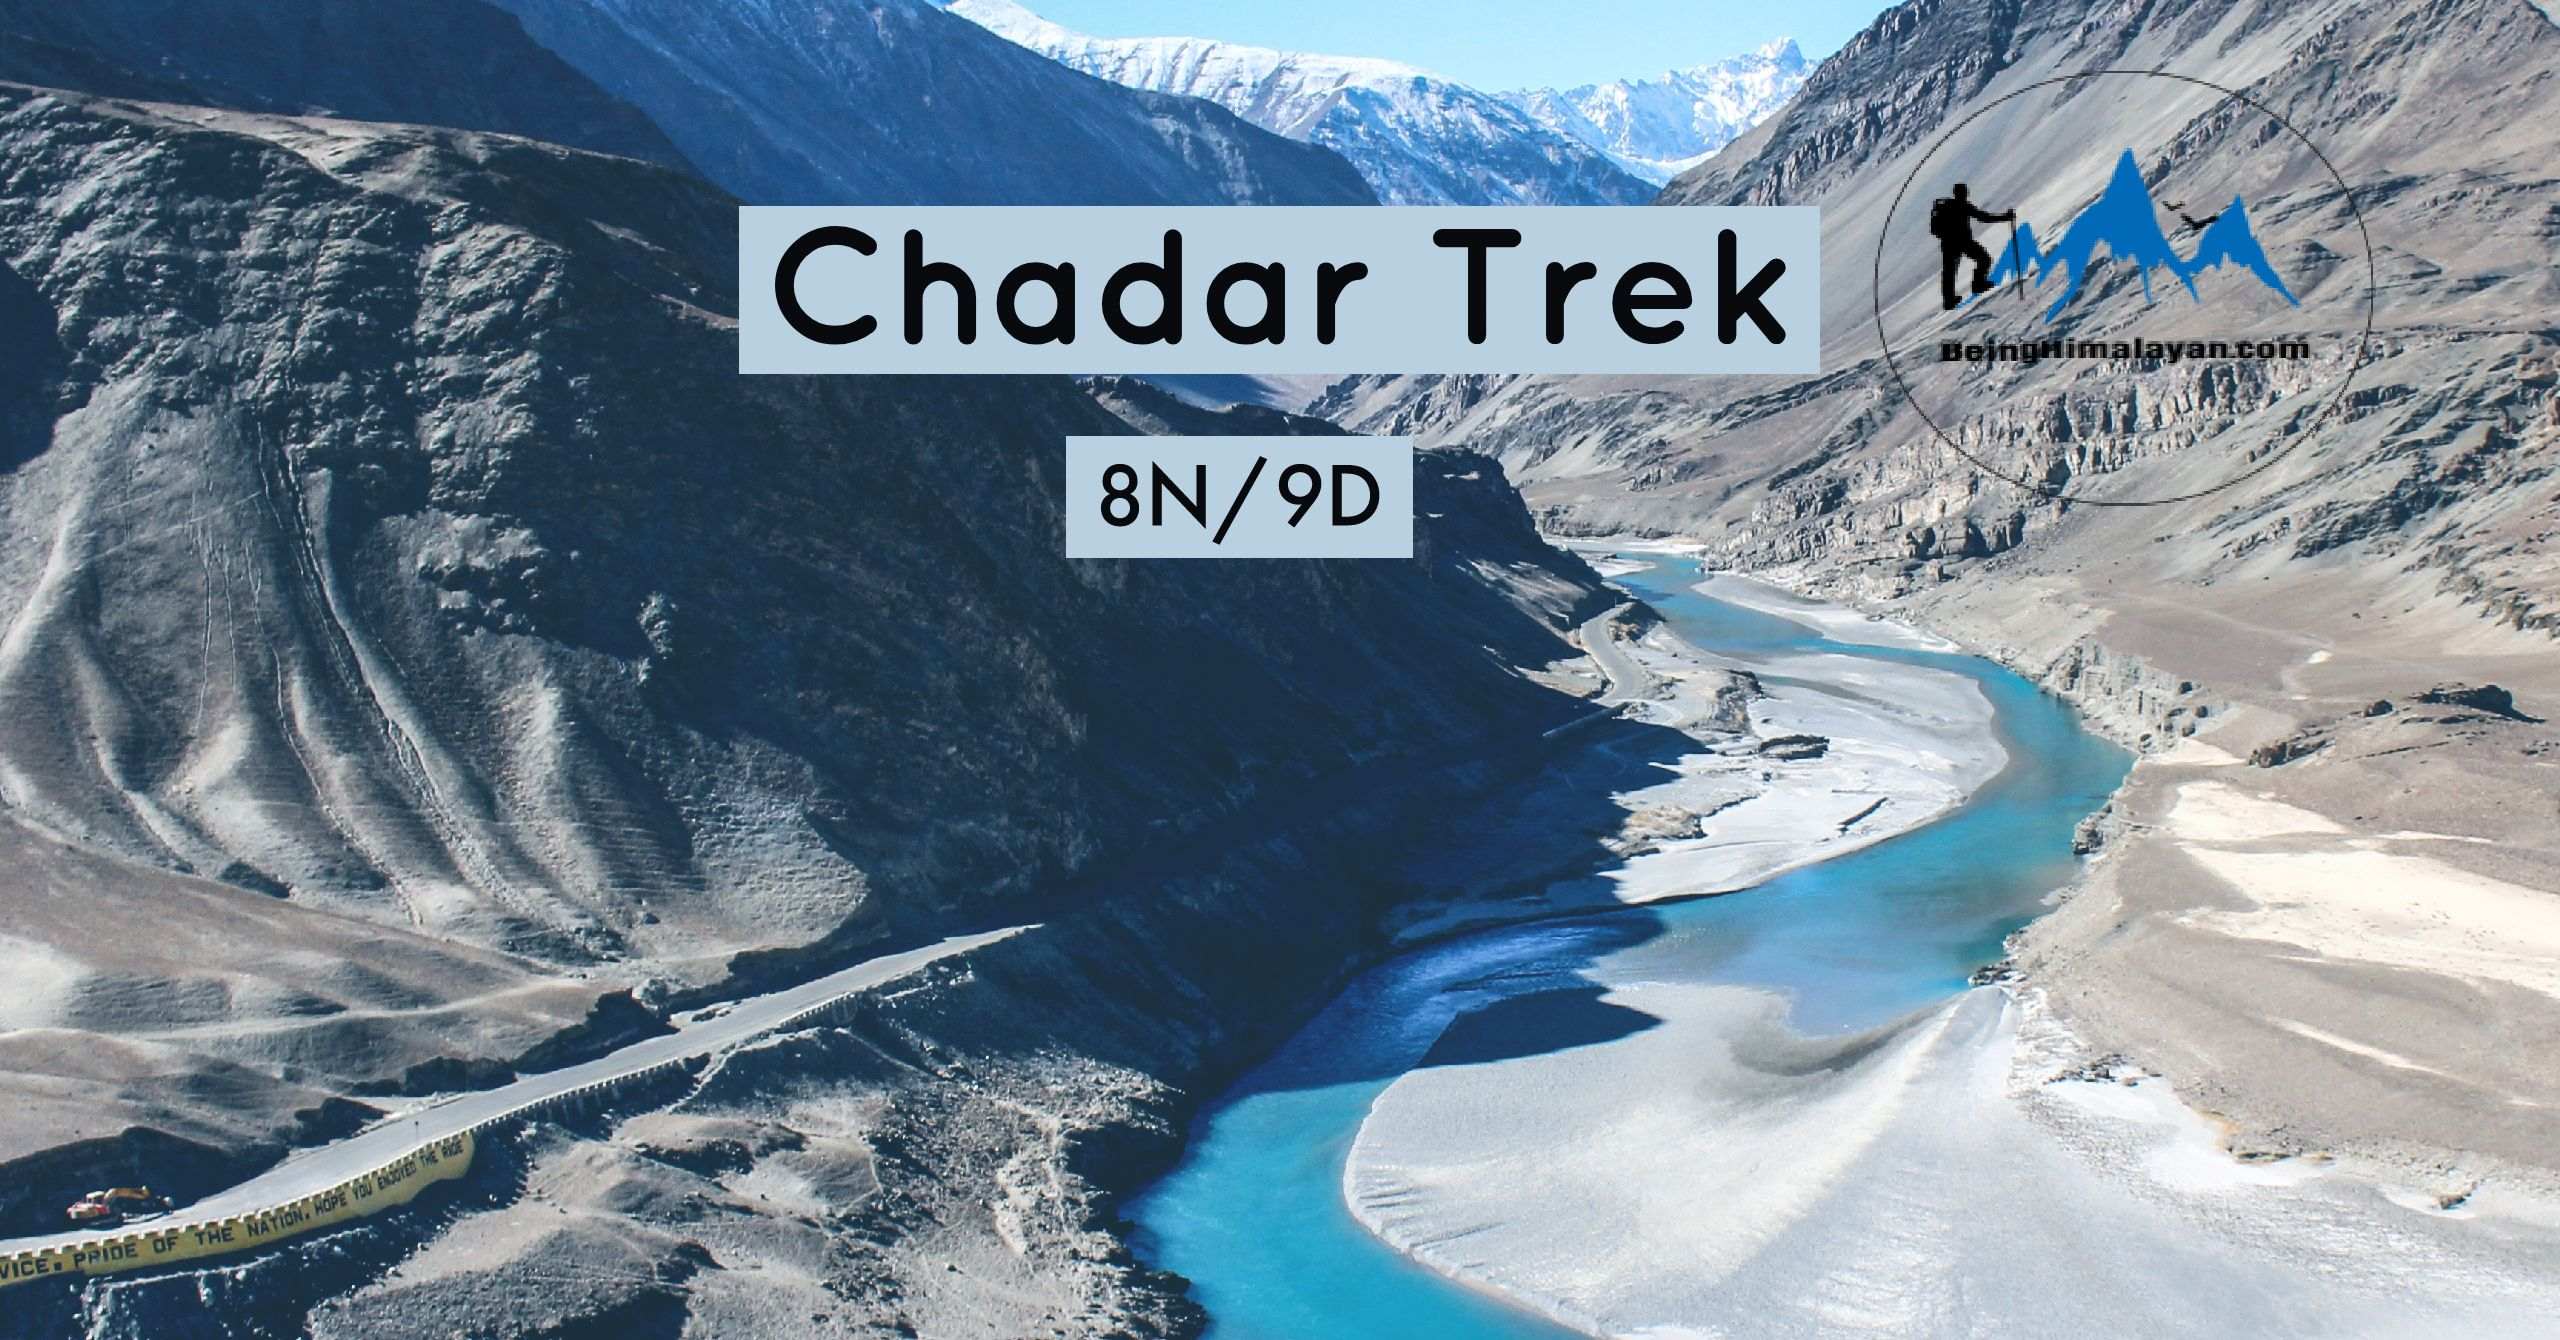 Chadar Trek Booking